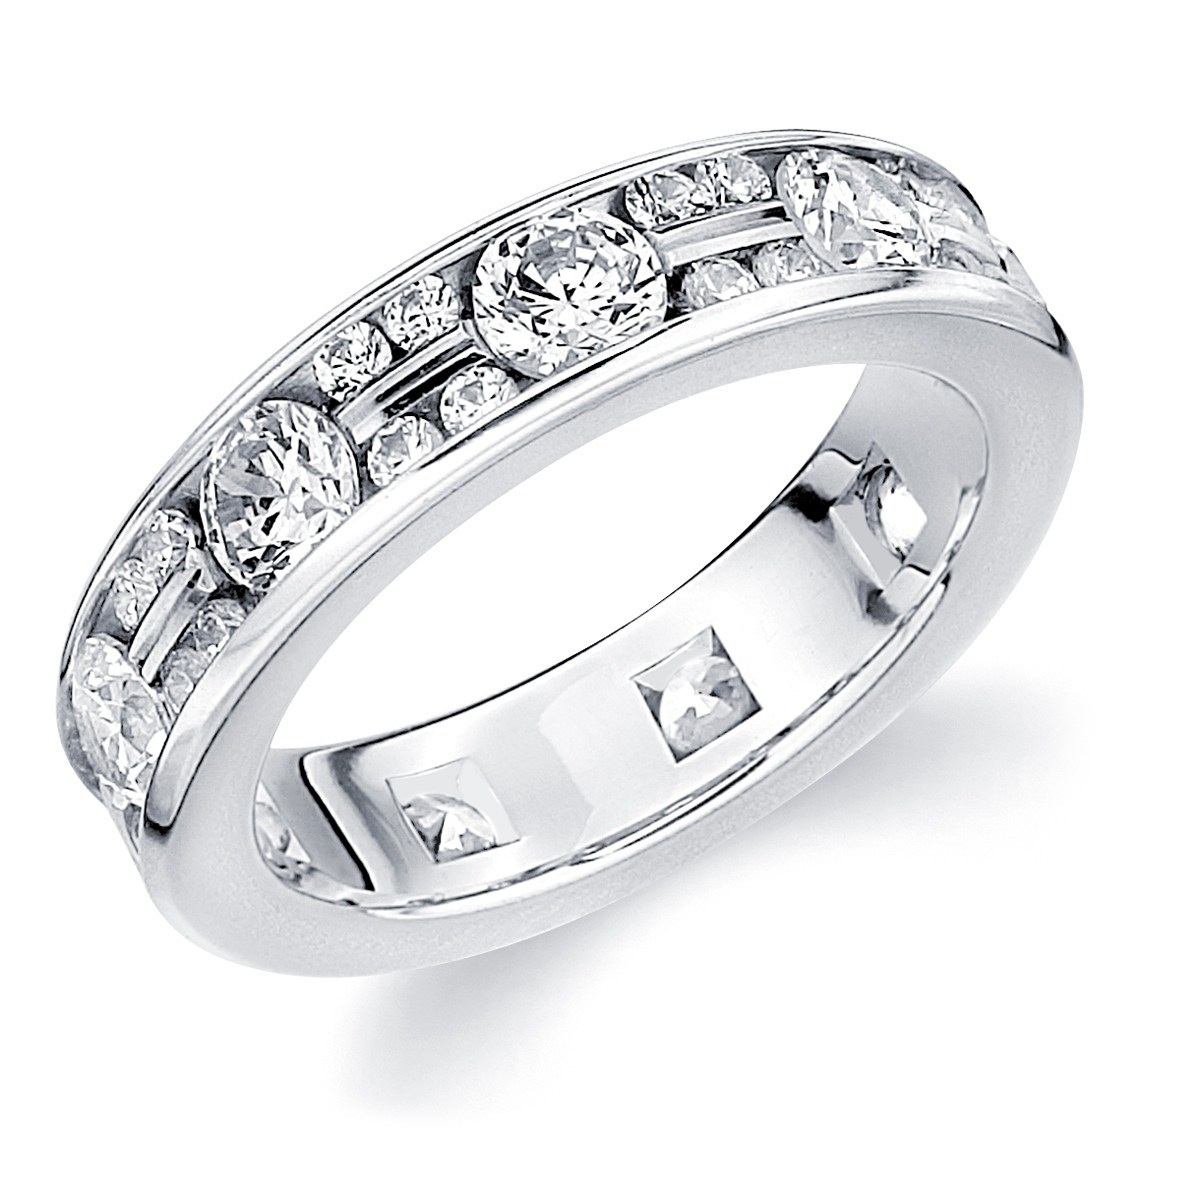 Shop 10K White Gold 2.0 Cttw Eternity Alternating Diamond Ring With Regard To Most Up To Date Diamond Alternating Vintage Style Eternity Wedding Bands In 10K White Gold (Gallery 3 of 15)